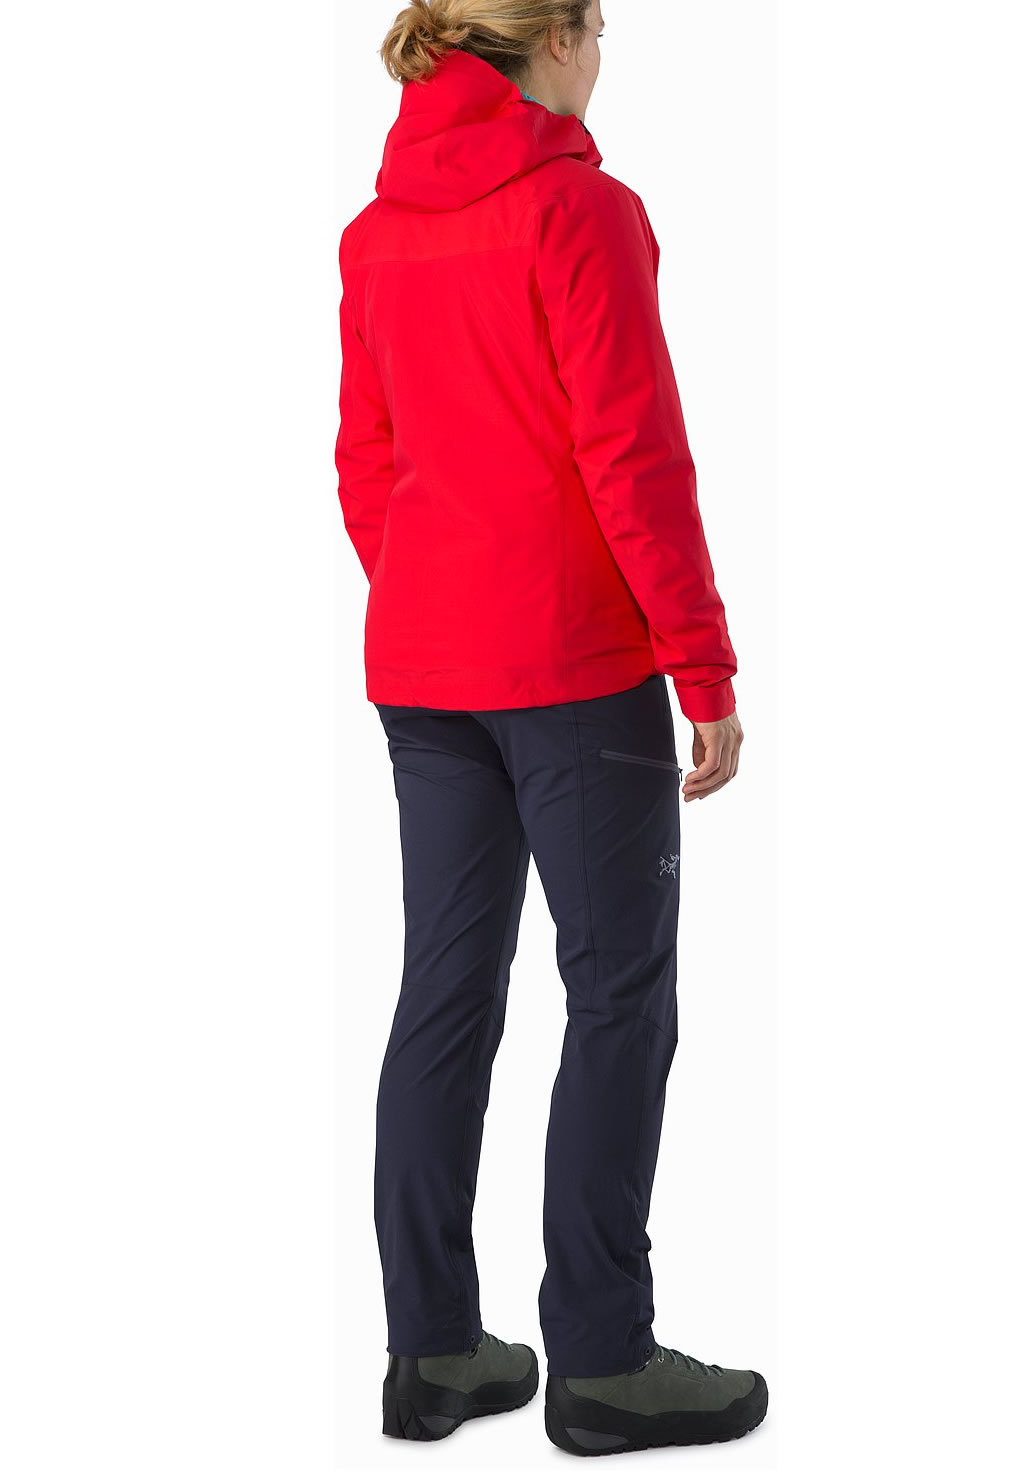 Red Women's Beta SL Hybrid Jacket by Arc'teryx, Back